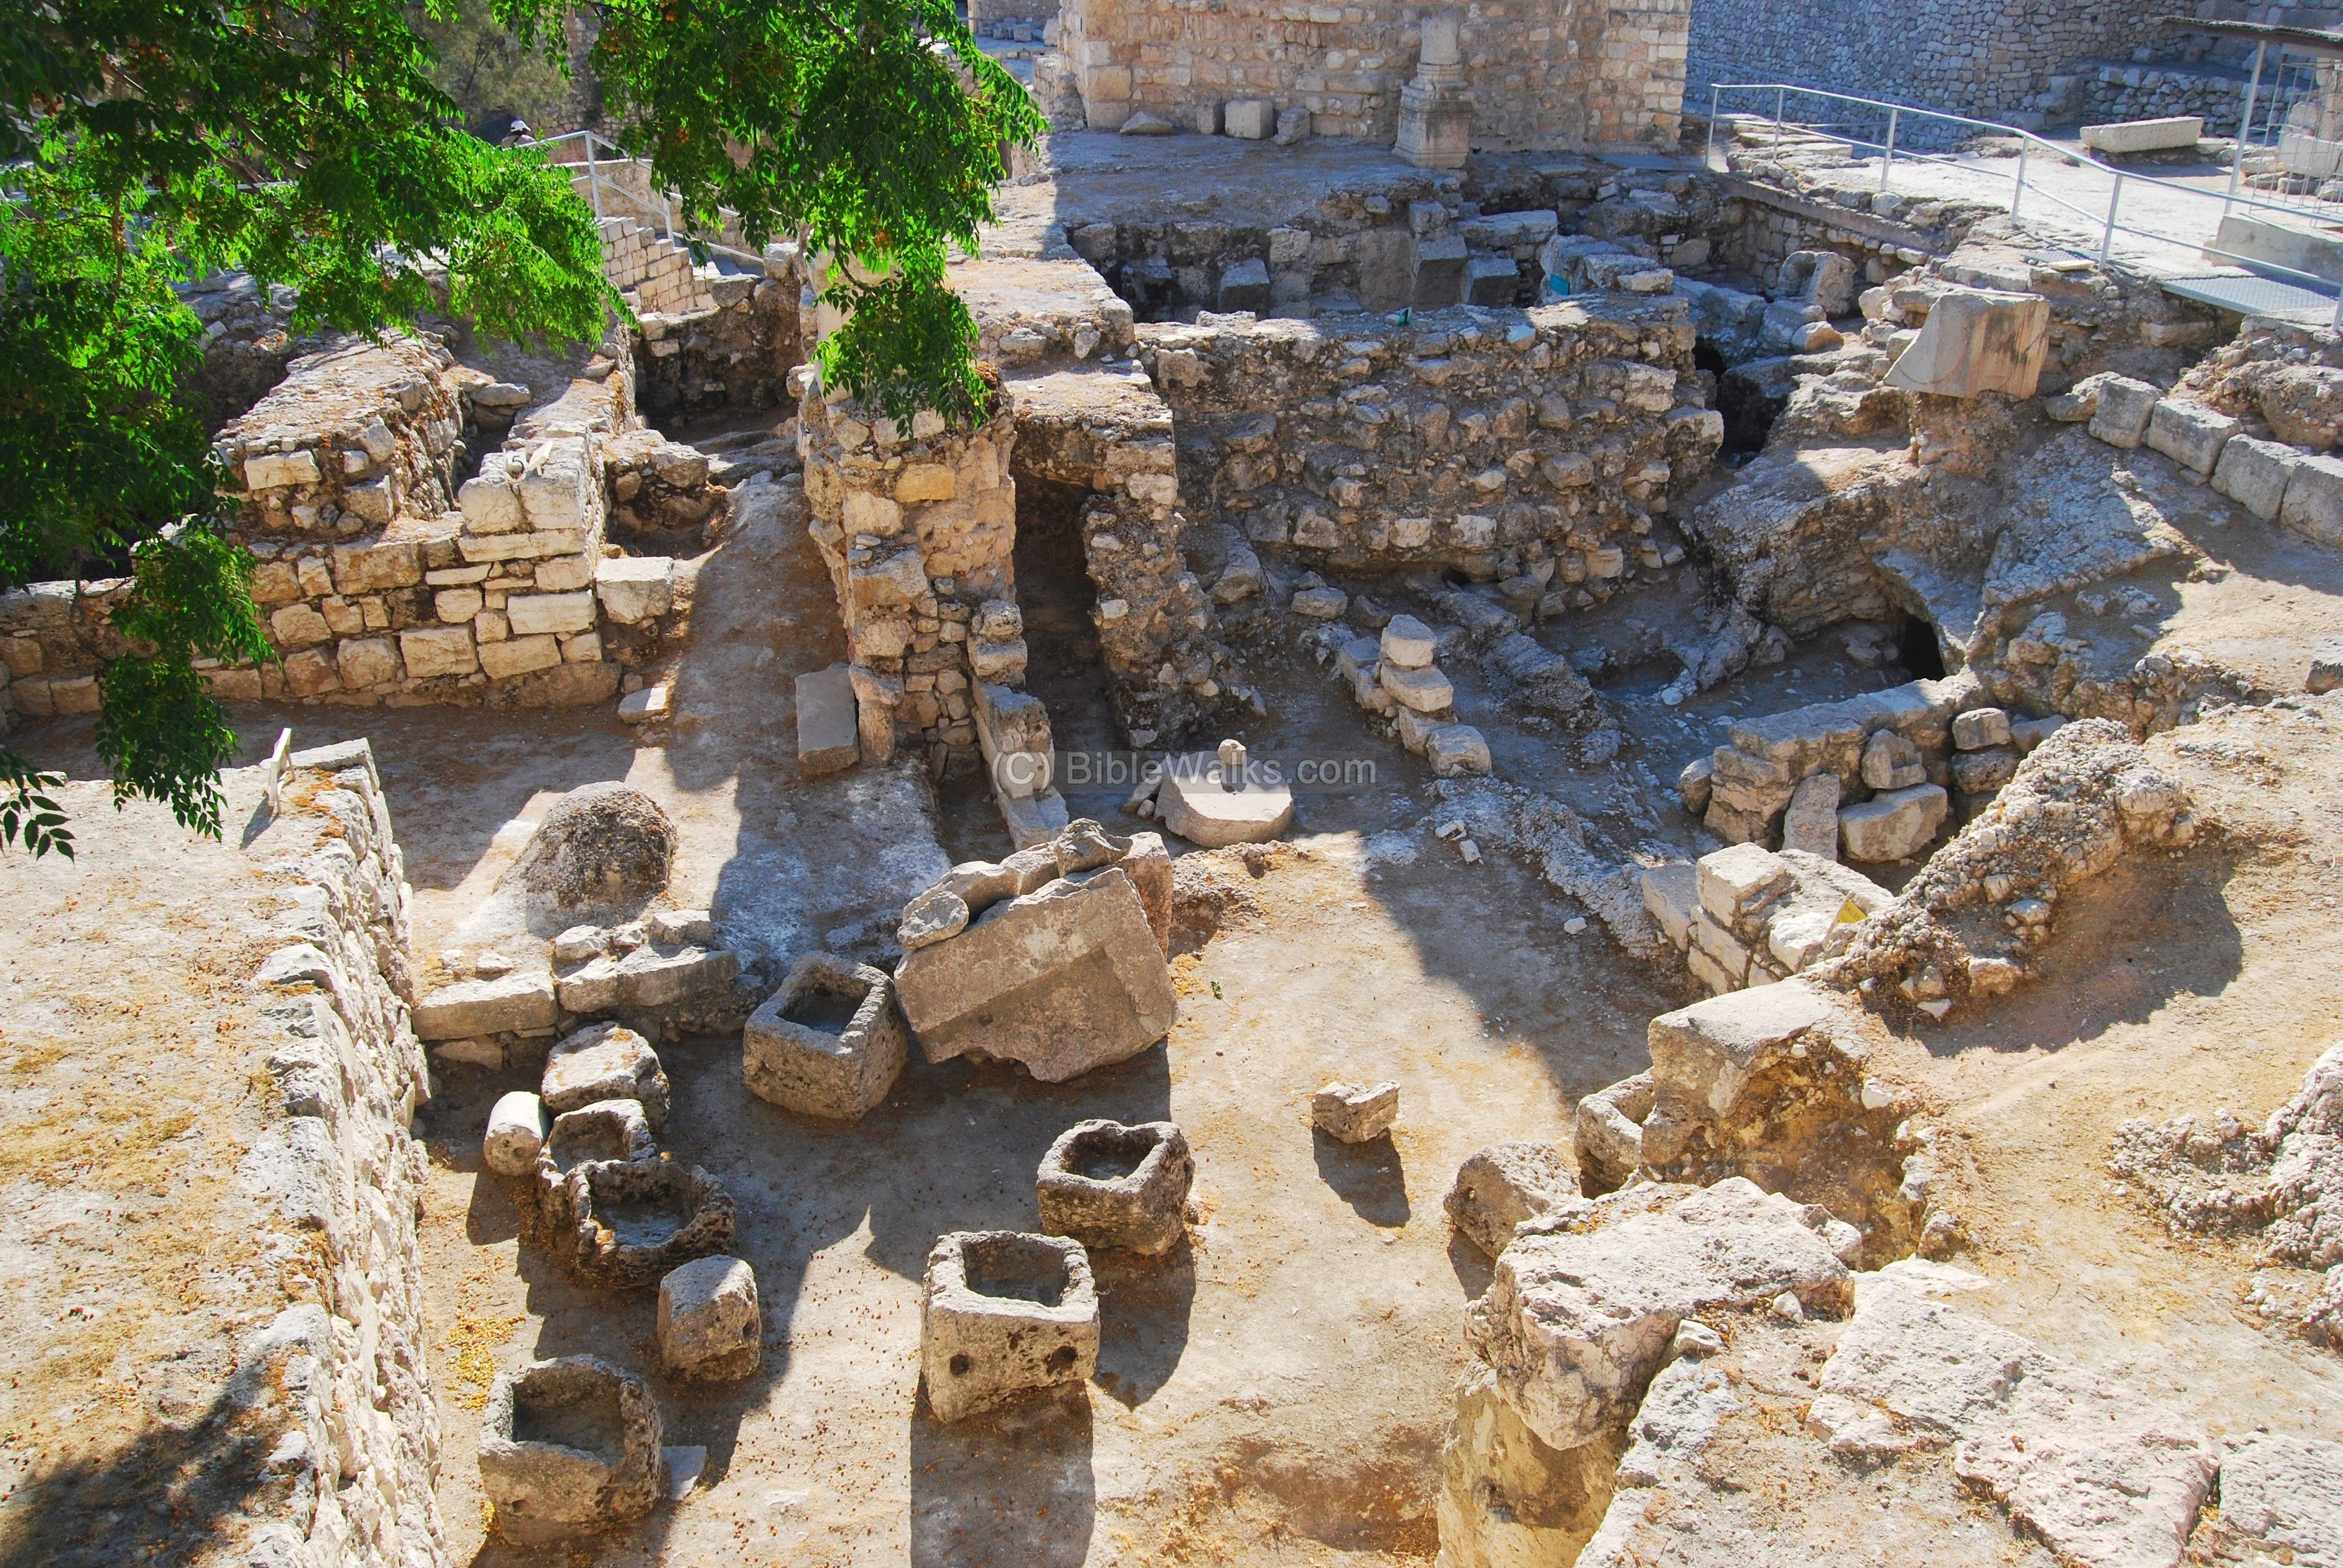 The Excavations Site Of The Ruins Of Bethesda John 5 2 Now There Is At Jerusalem By The Sheep Market A Pool Israel History Bible History Ancient Israel